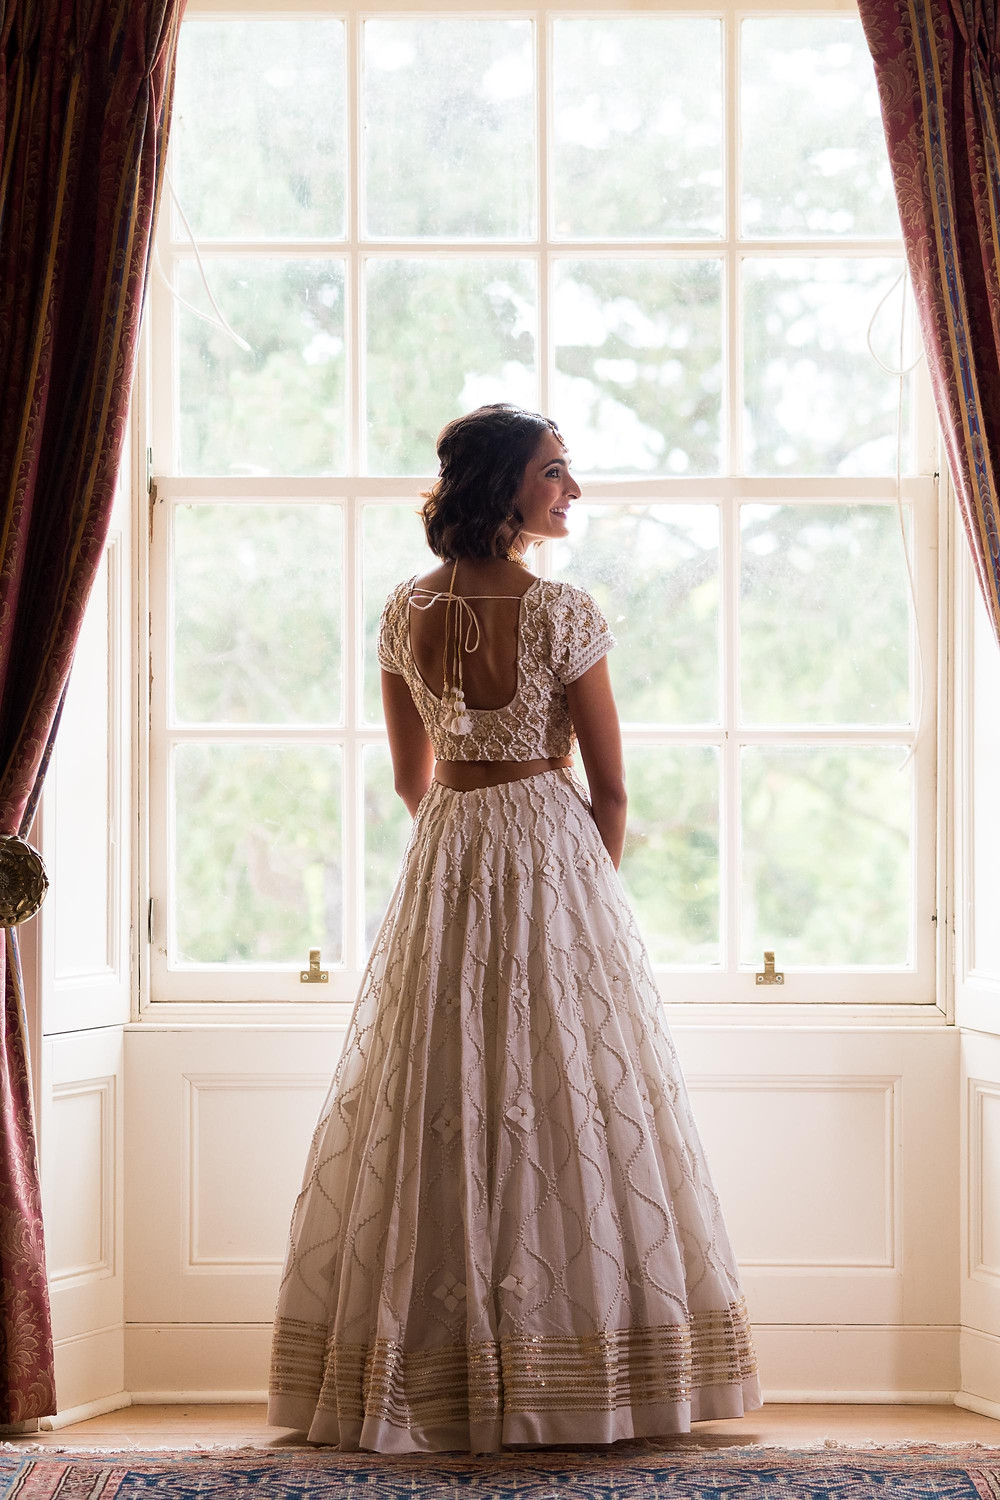 Bride Standing a wedding before a Scottish Country House Wedding with the most beautiful wedding dress ever. John Nassari